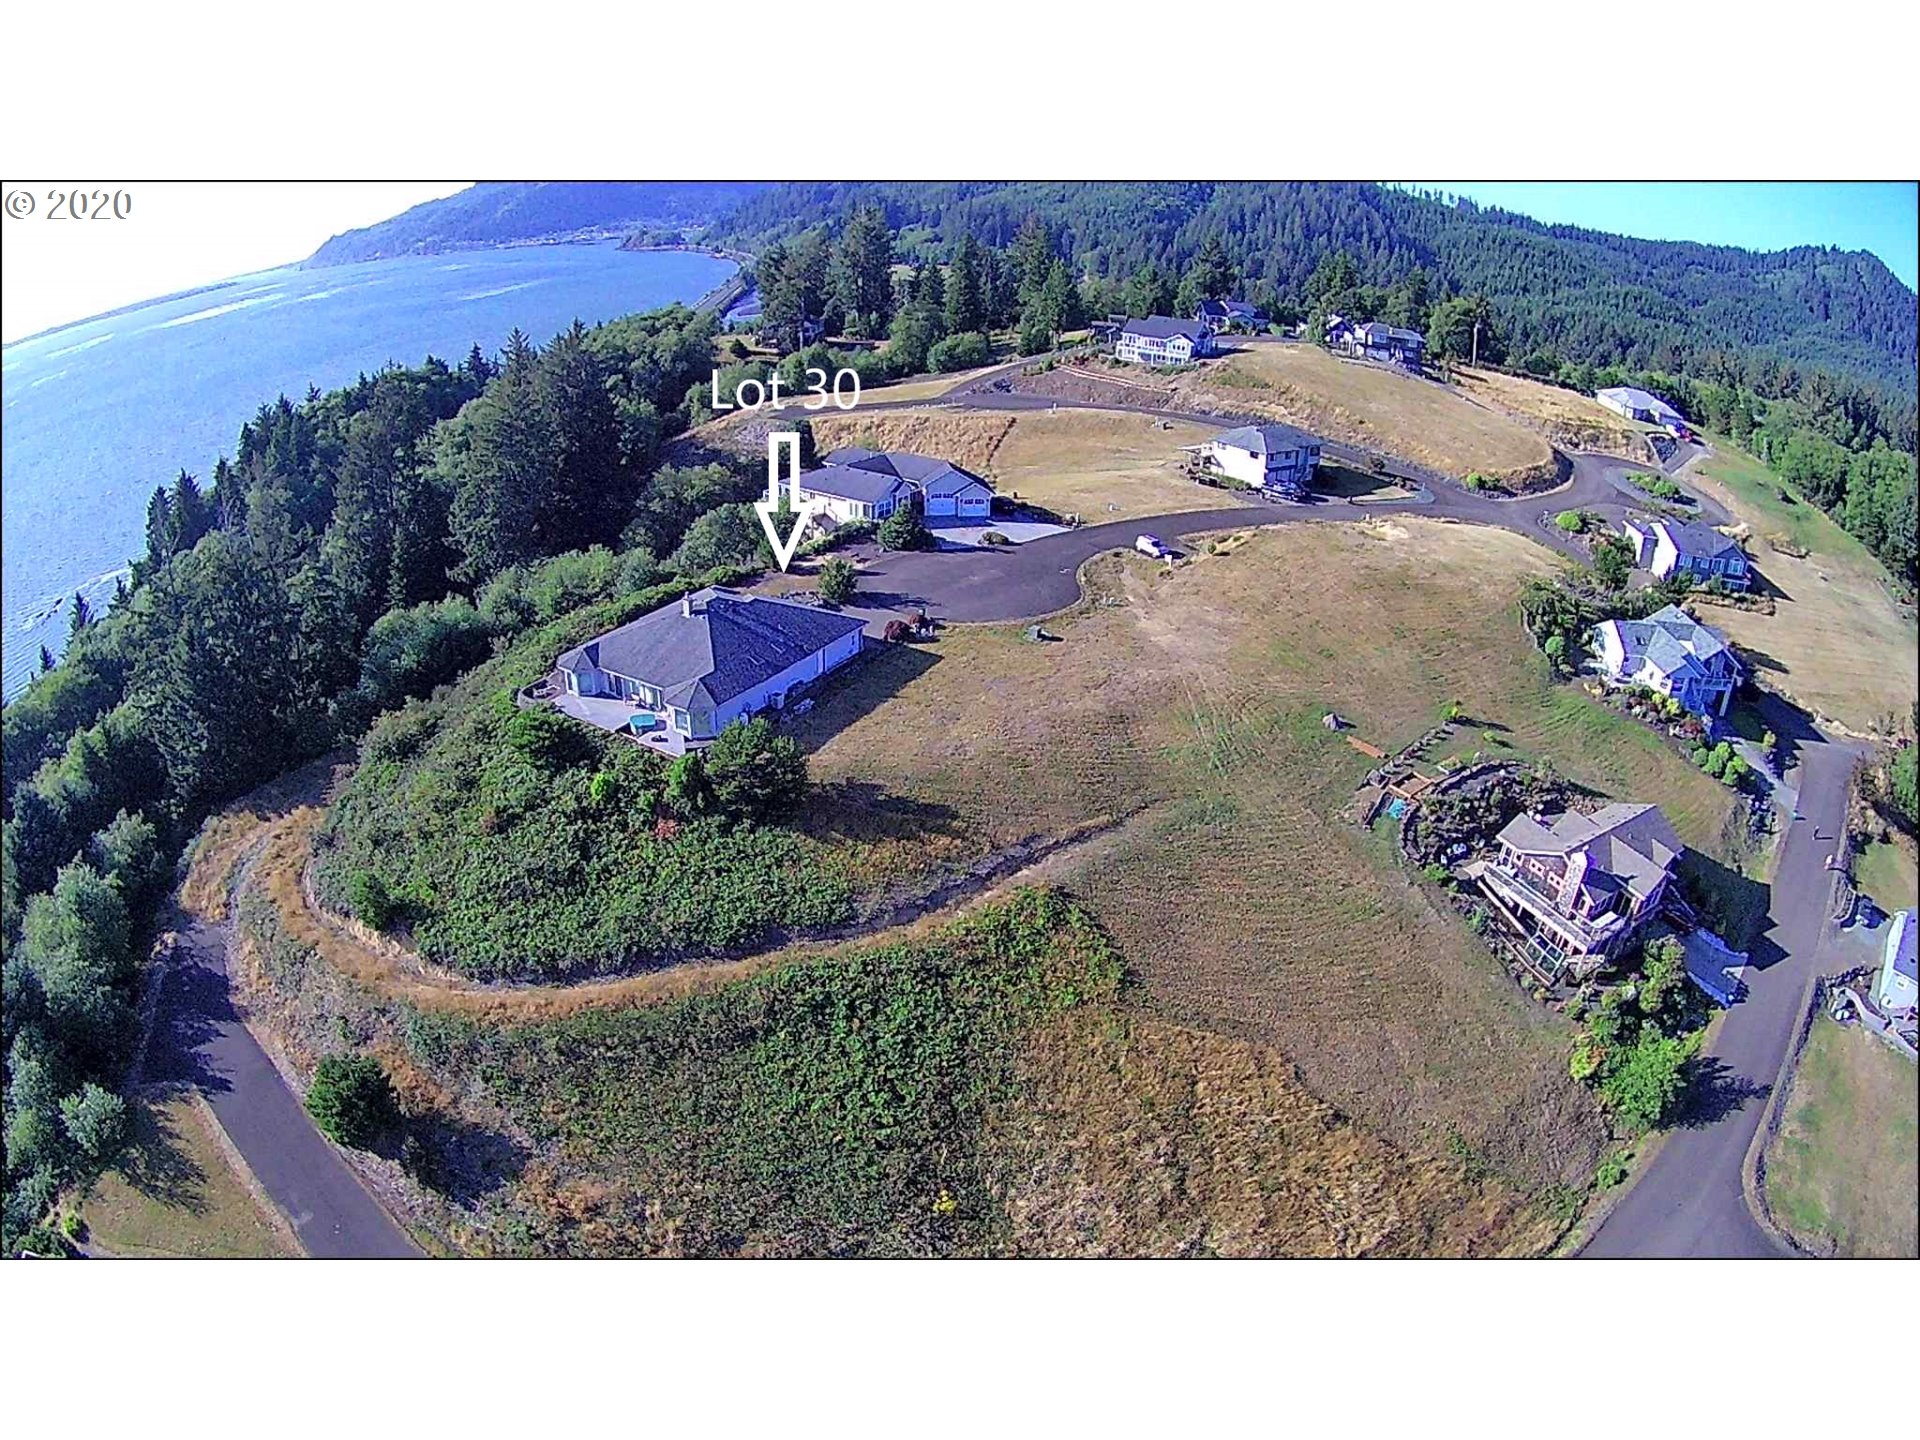 Ocean CT Lot30, Bay City, Oregon 97107, ,Lots And Land,For Sale,Ocean CT Lot30,20551899